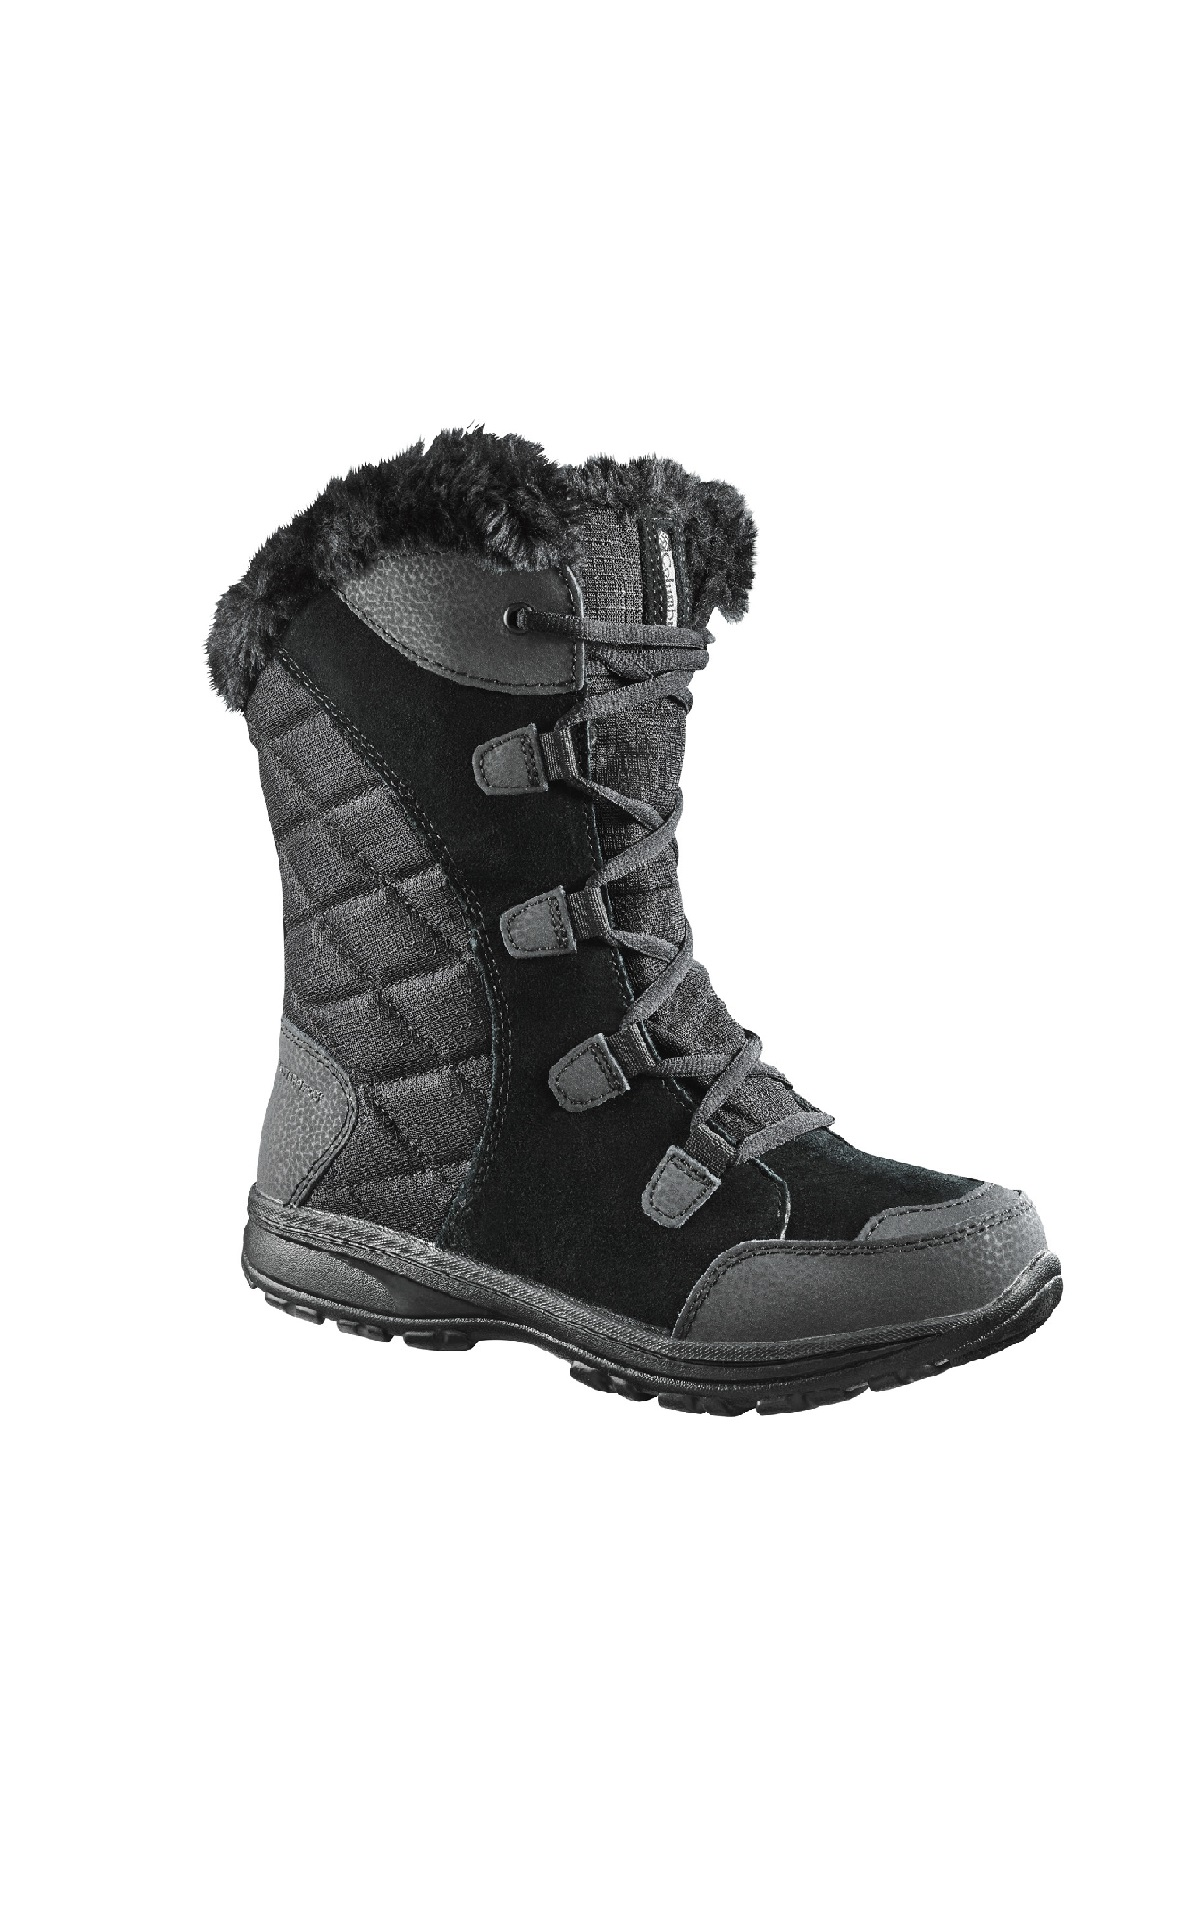 Black Icefalls boots Columbia